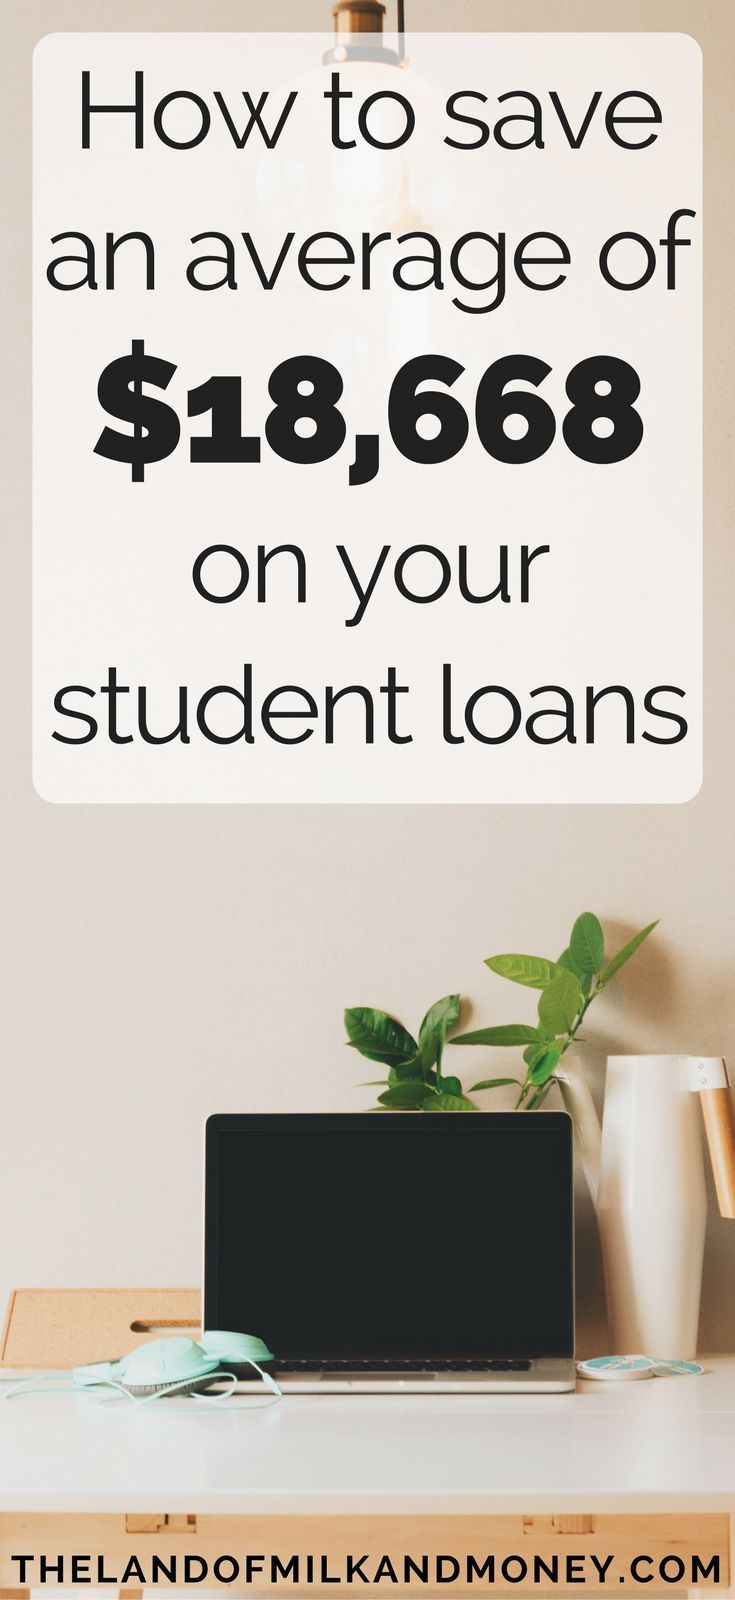 This Is Amazing I M Drowning In My Student Loans So To Find Out There S A Way To Save Almost 20k An Student Loans Refinance Student Loans Saving Money Weekly